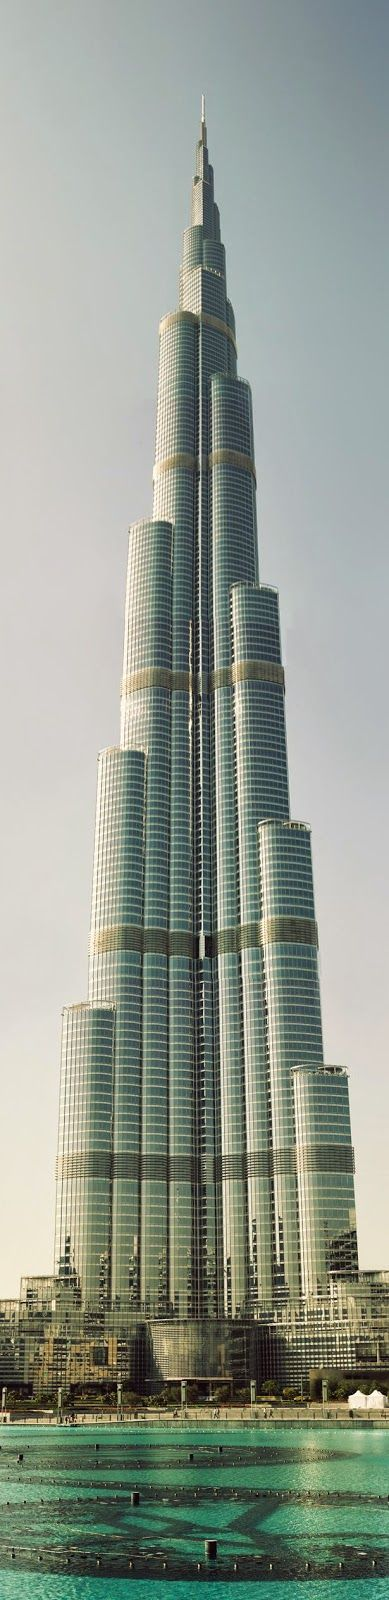 Burj Khalifa (Dubai) - The tallest tower in the world